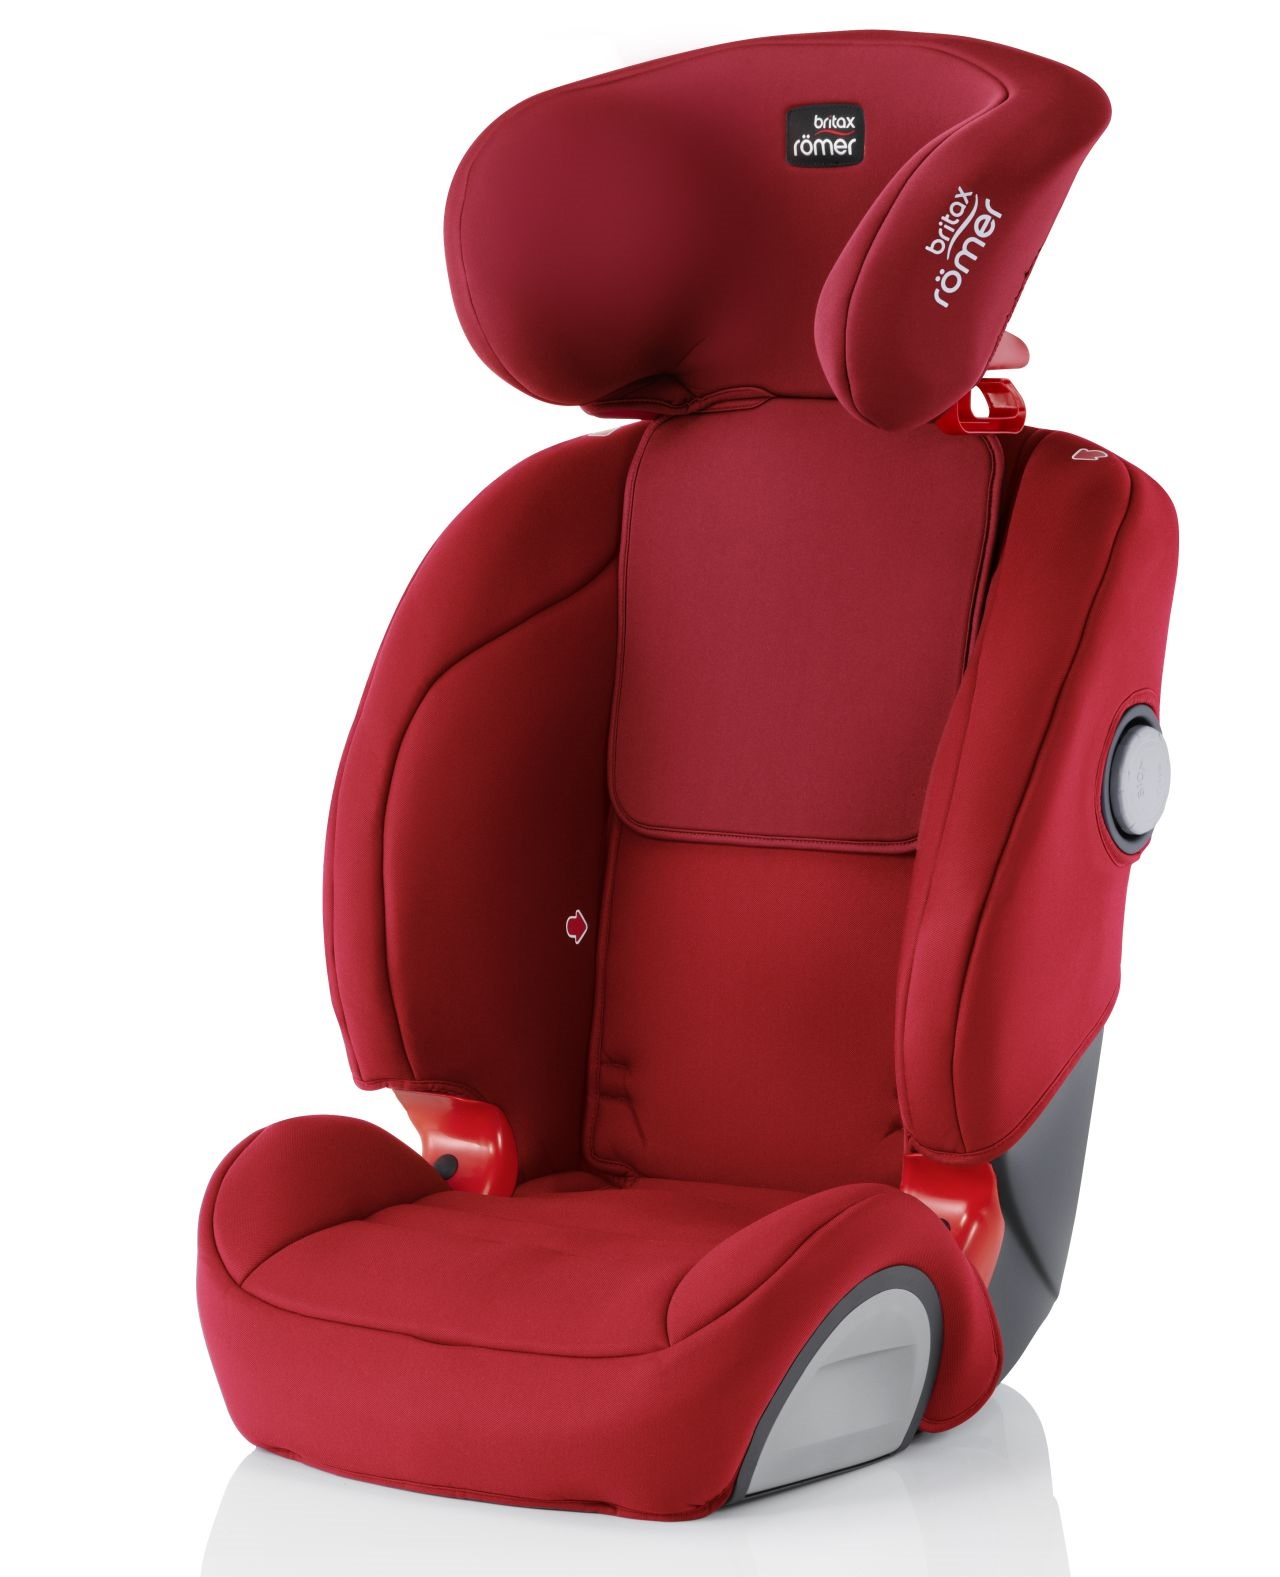 britax r mer car seat evolva 1 2 3 sl sict isofix 2018 flame red buy at kidsroom car seats. Black Bedroom Furniture Sets. Home Design Ideas